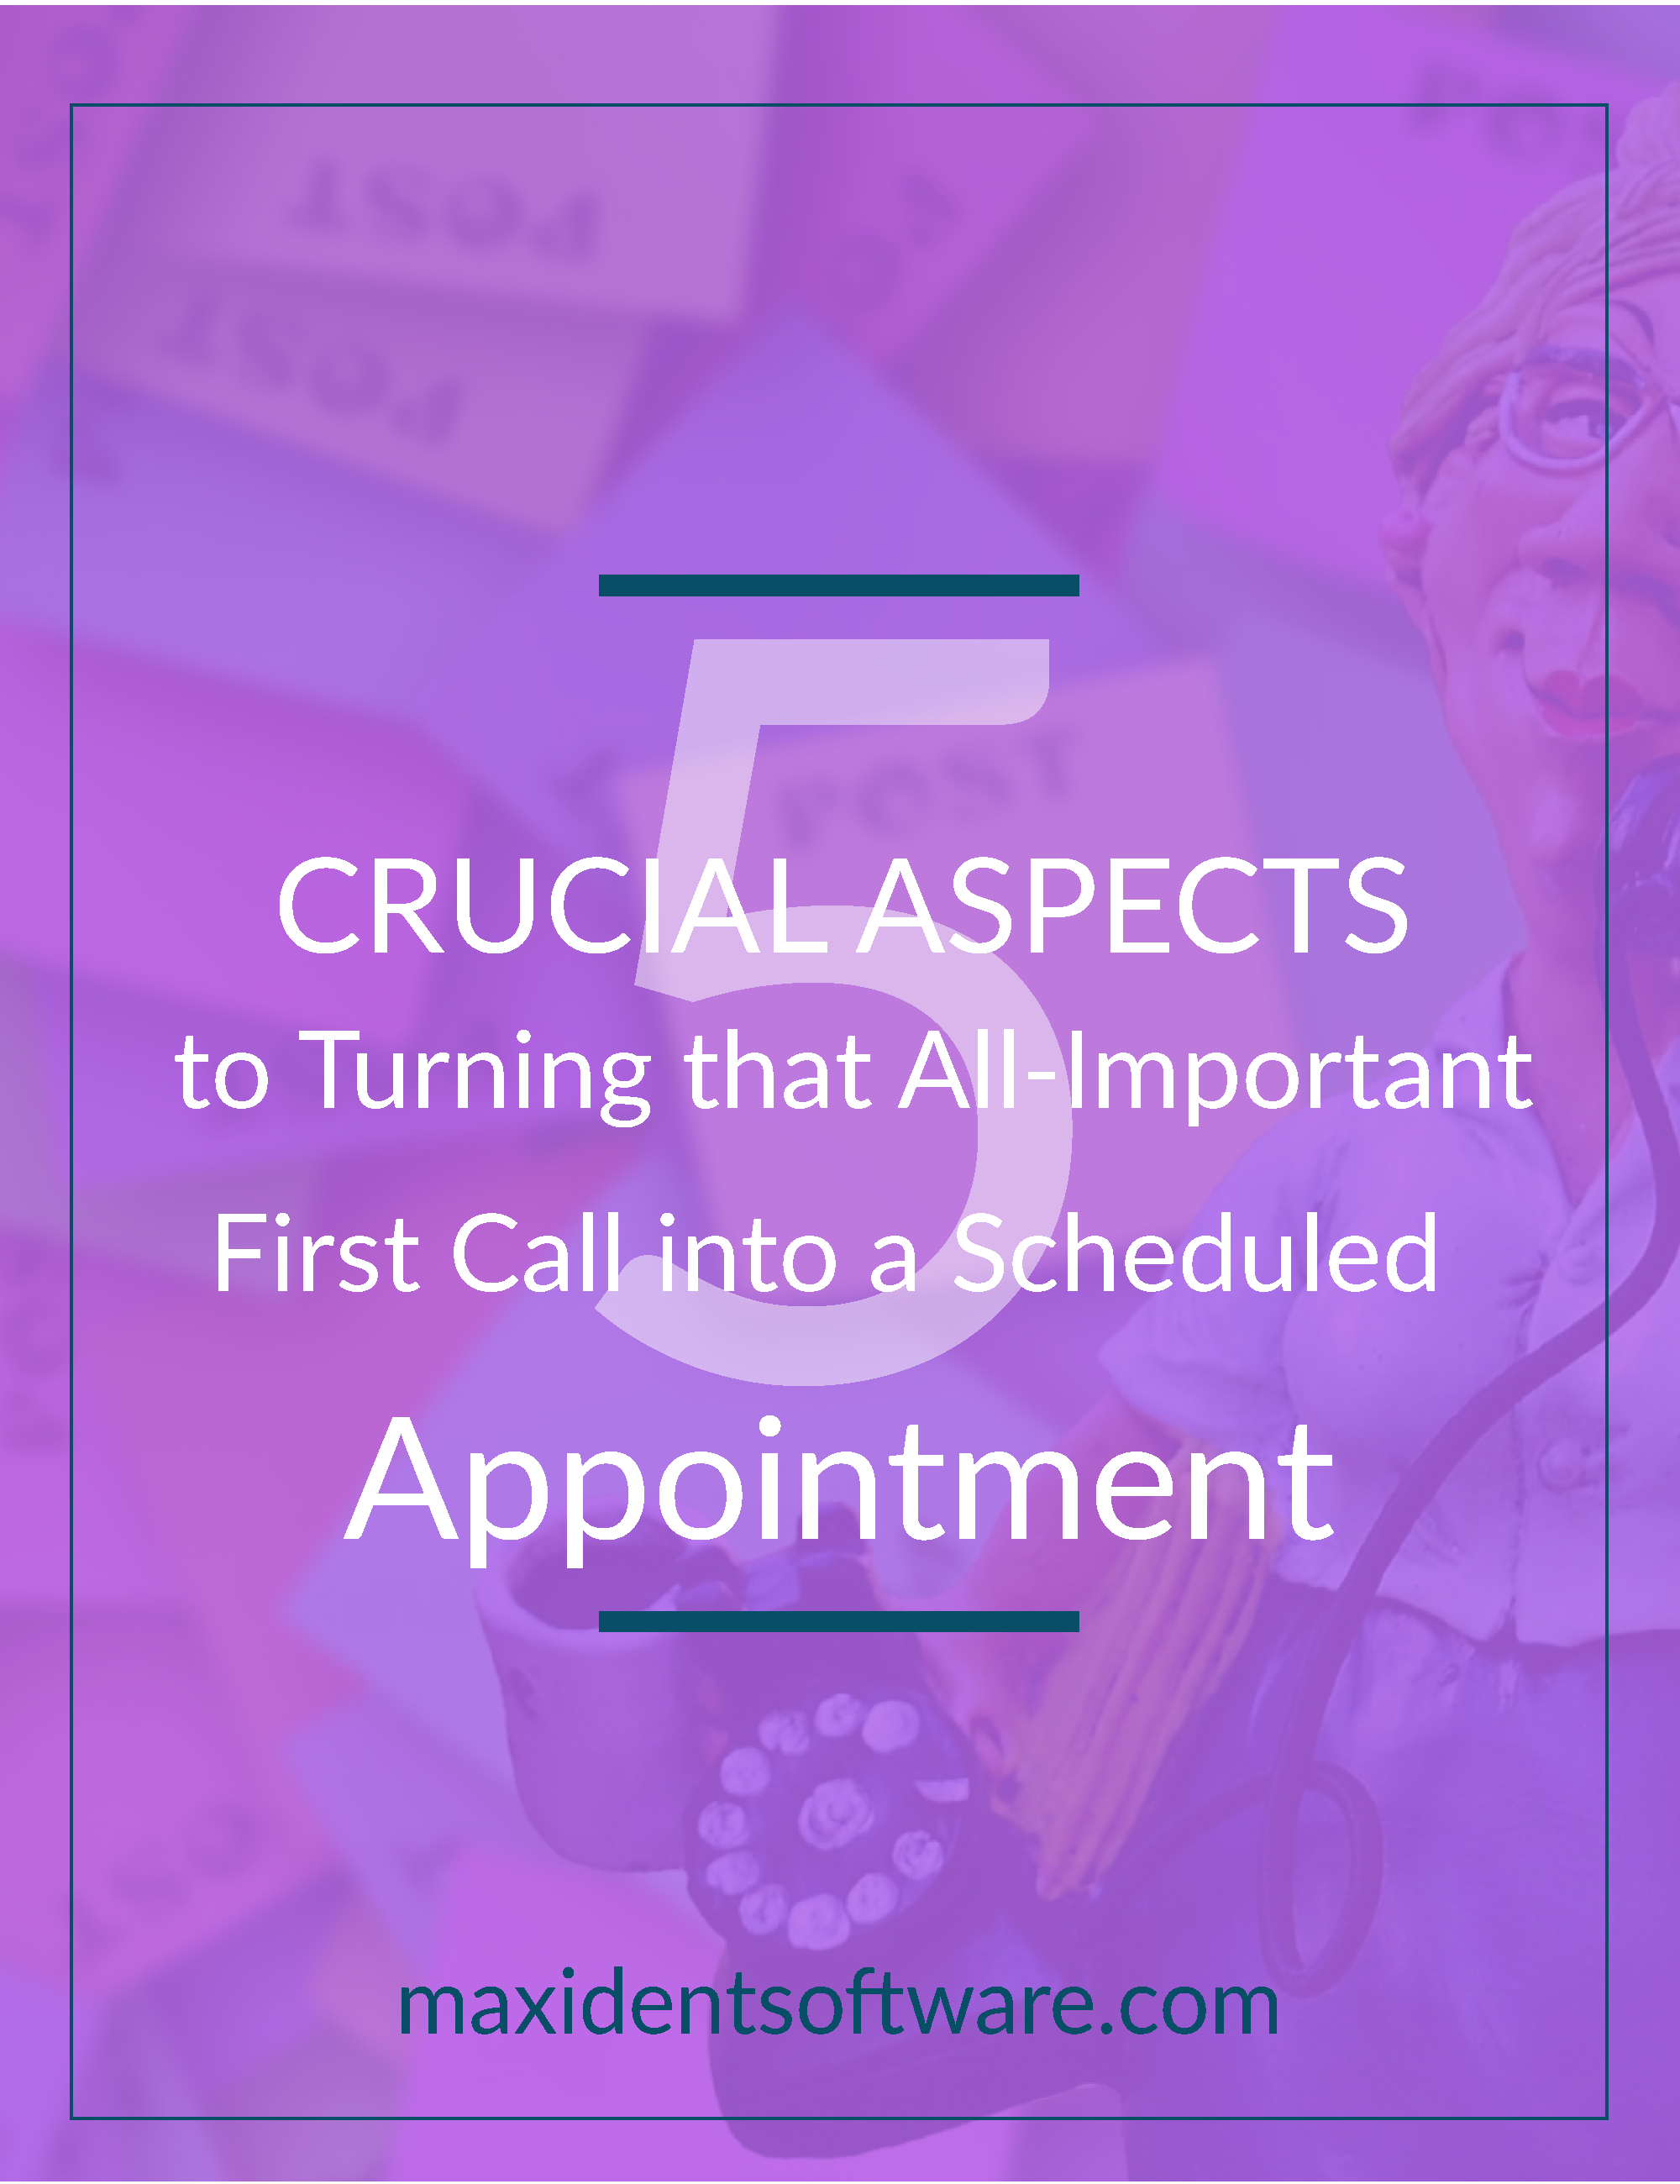 5 Crucial Aspects to Turning that All Important First Call into a Scheduled Appointment